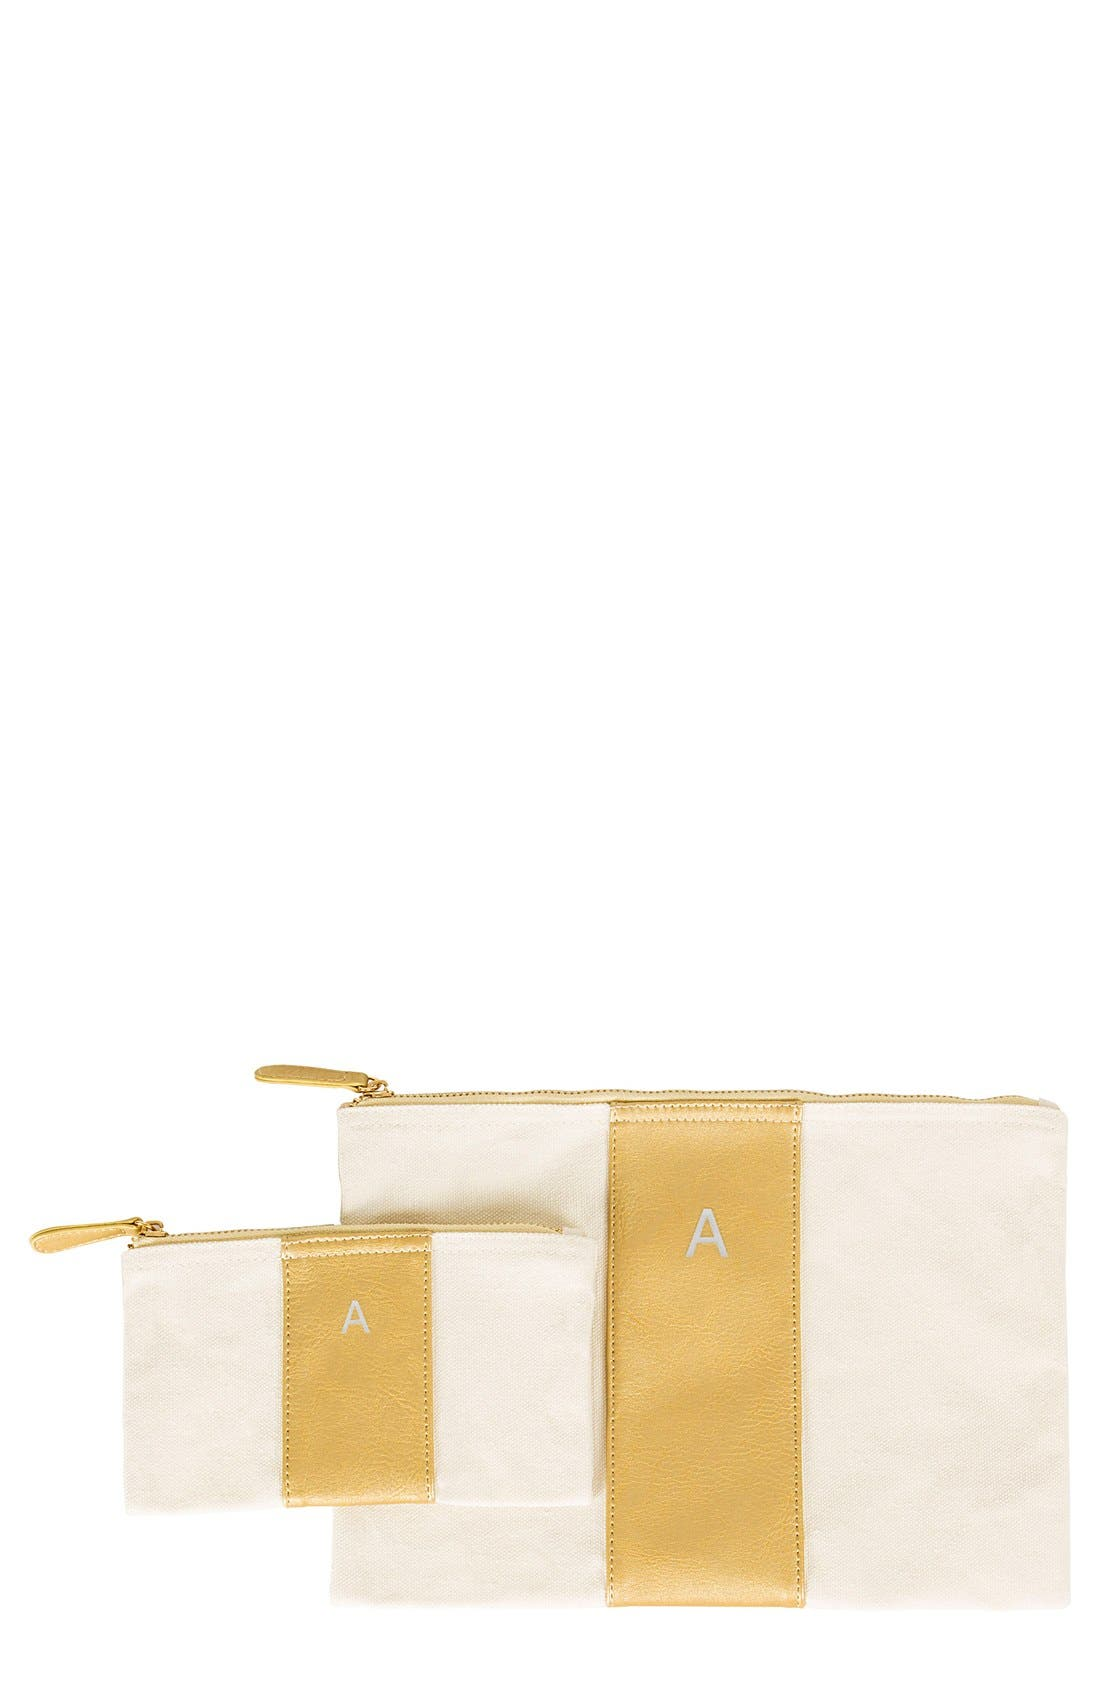 Personalized Faux Leather Clutch,                             Main thumbnail 39, color,